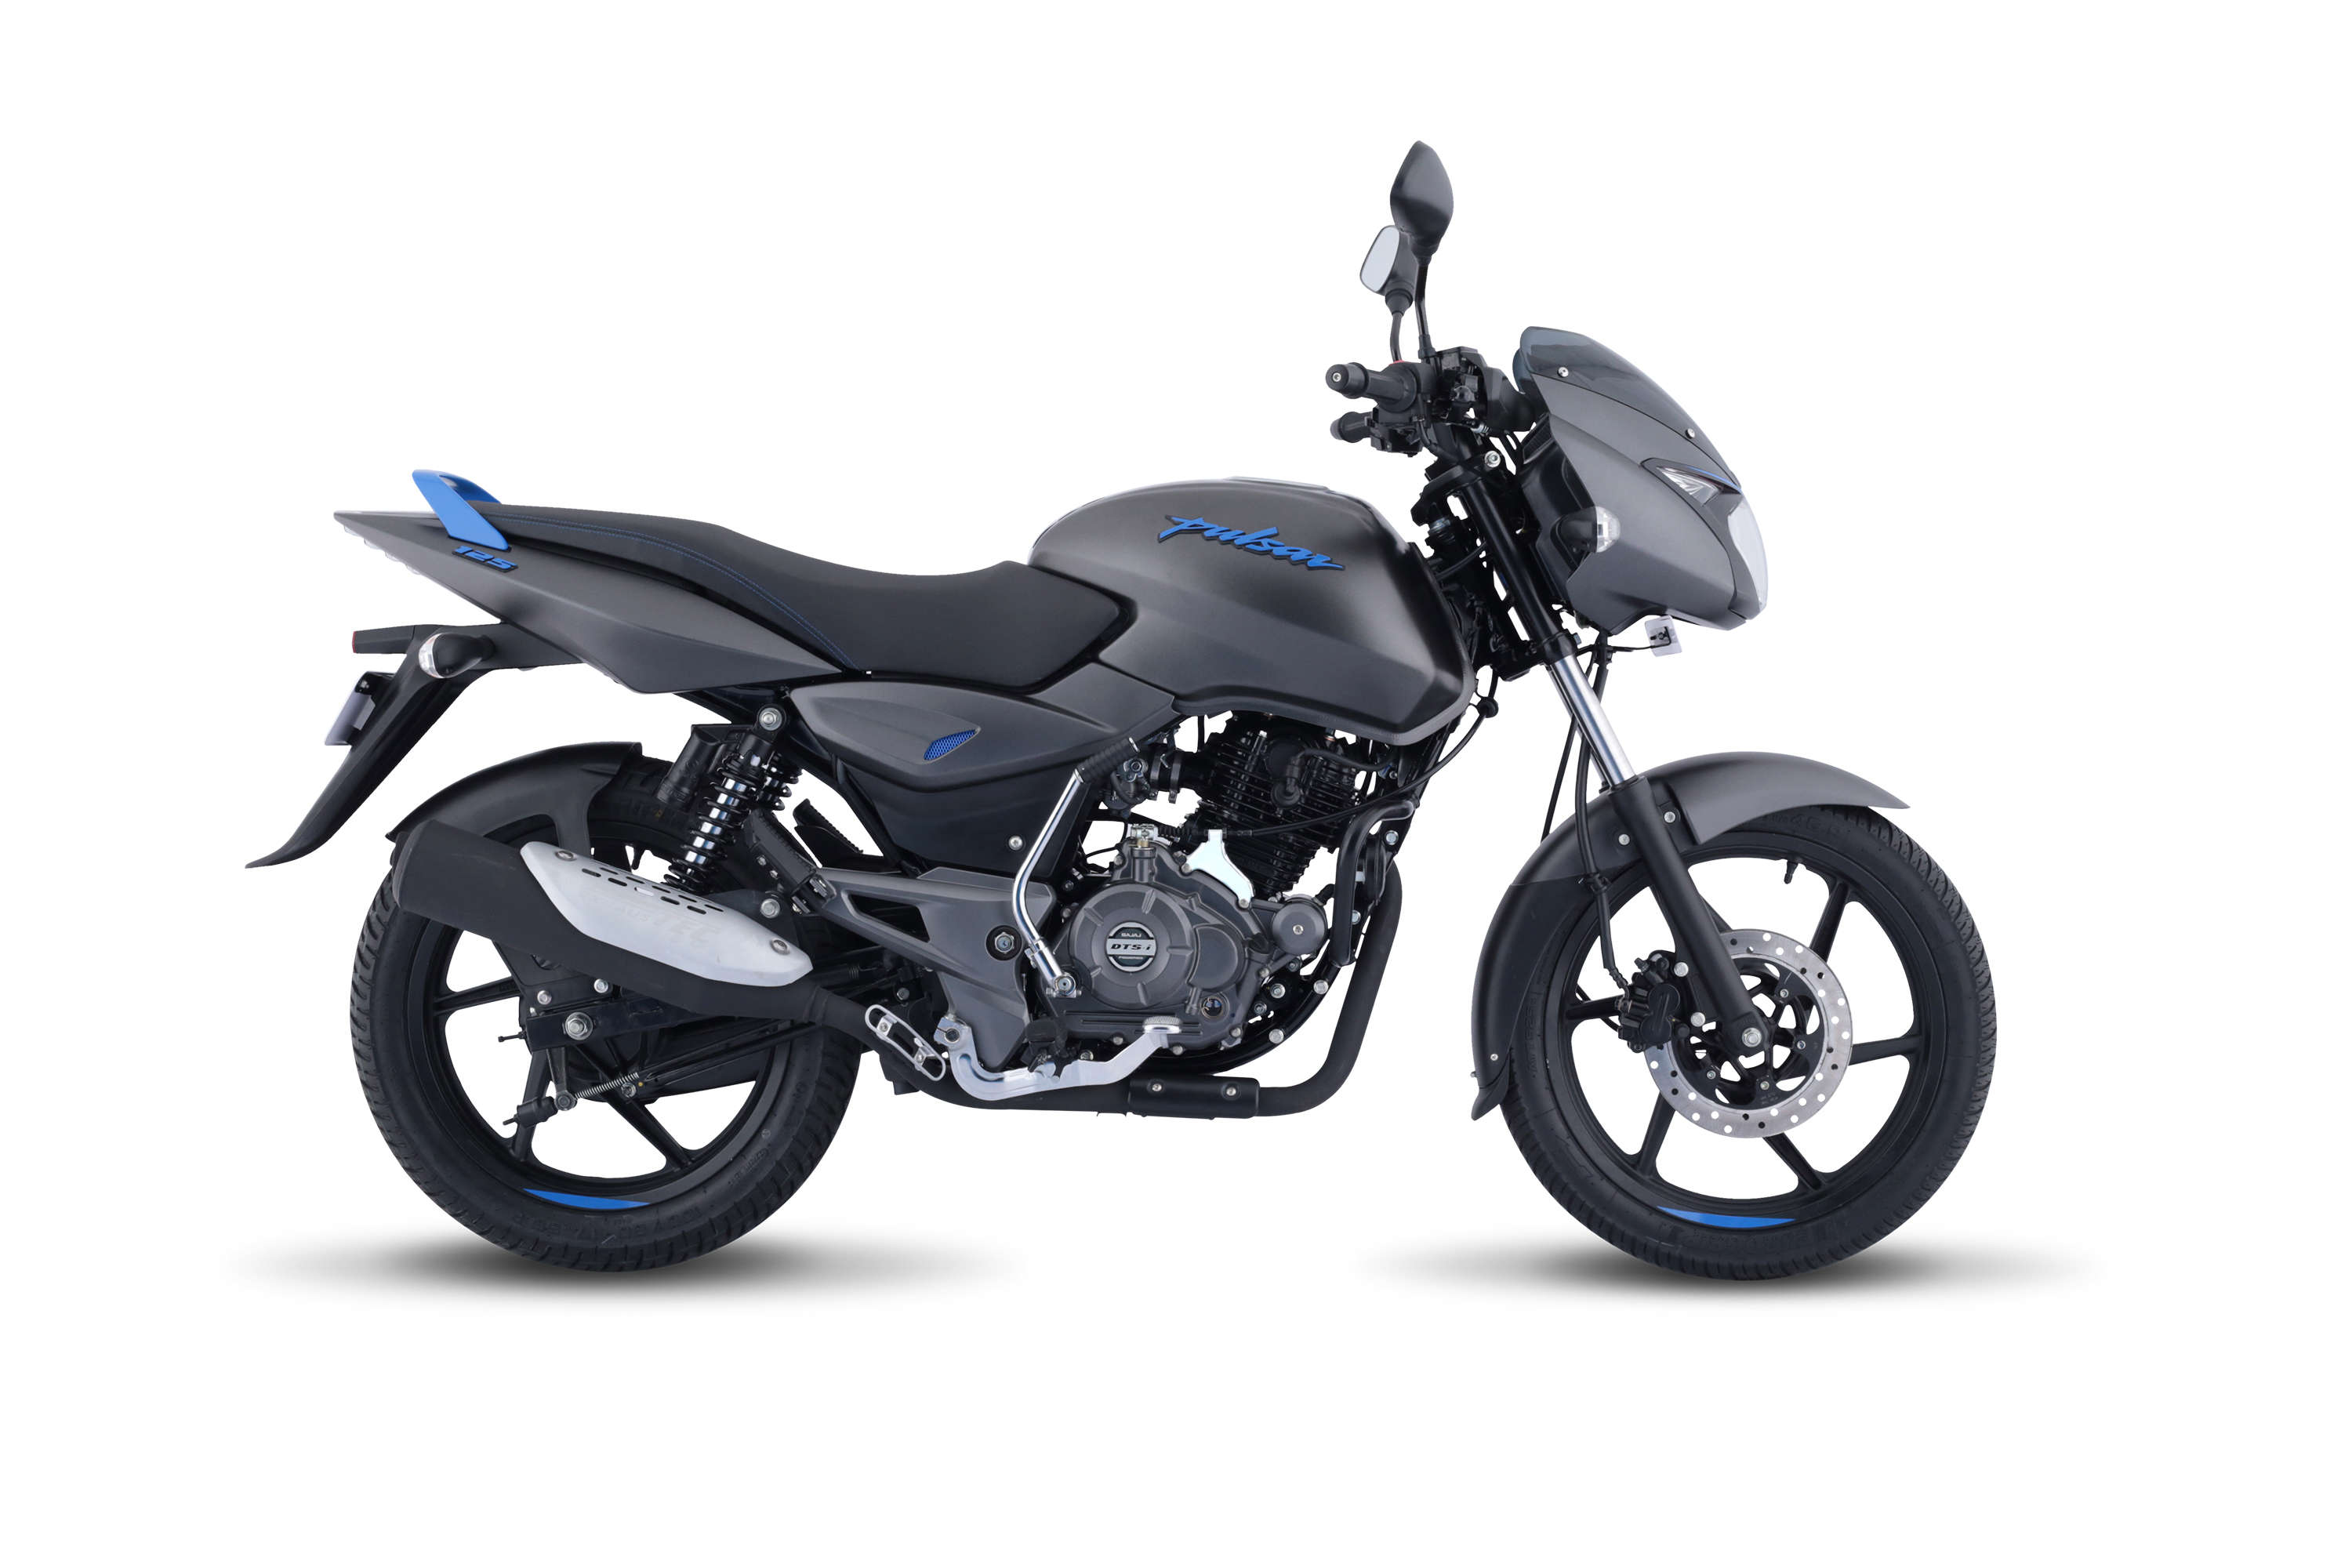 Pulsar 125 Neon comes with colour co-ordinated Pulsar logo and grab rail, 3D variant logo on the rear cowl and neon coloured streak on black alloy to complete the look on the motorcycle.